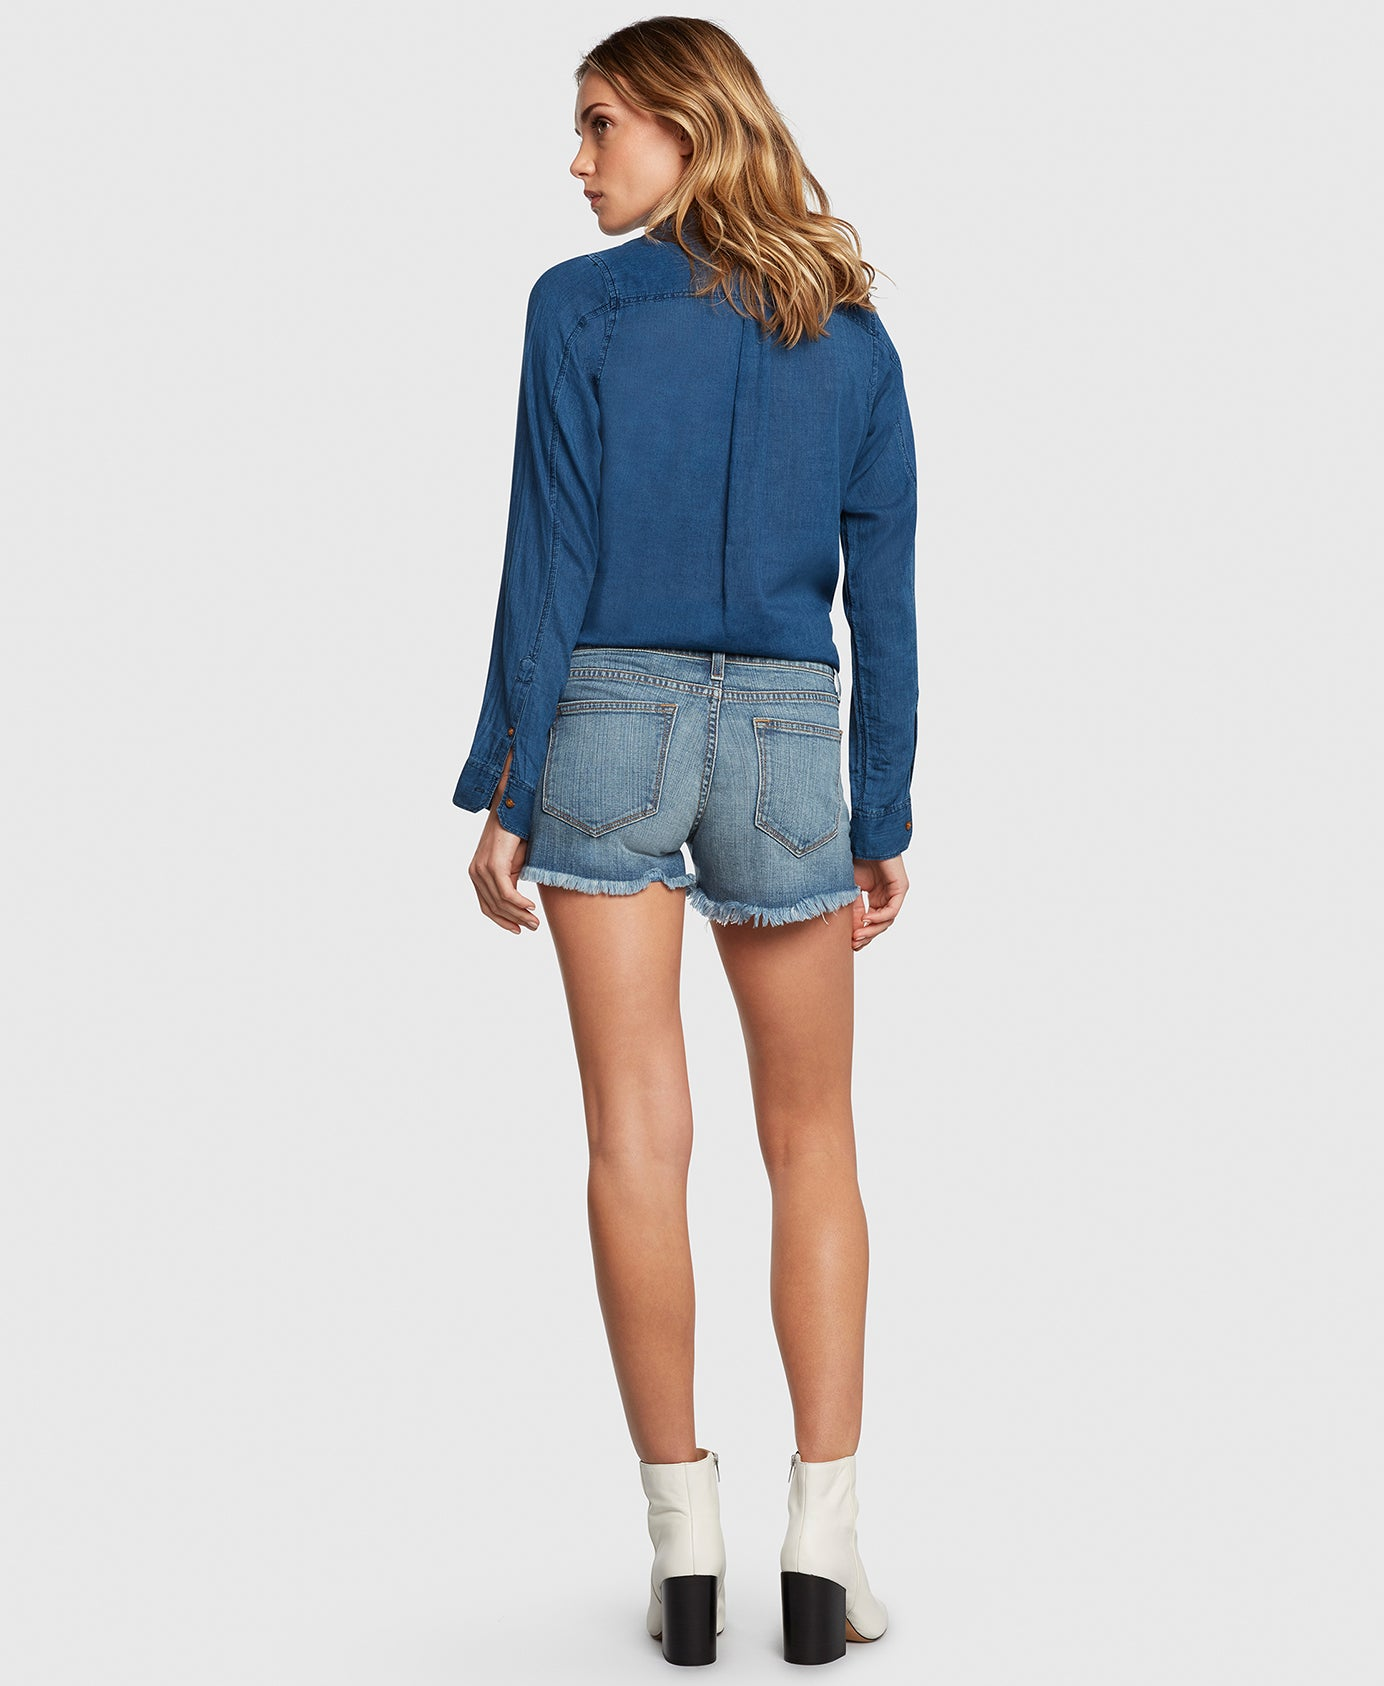 Principle WANDERER in Vacation denim shorts back